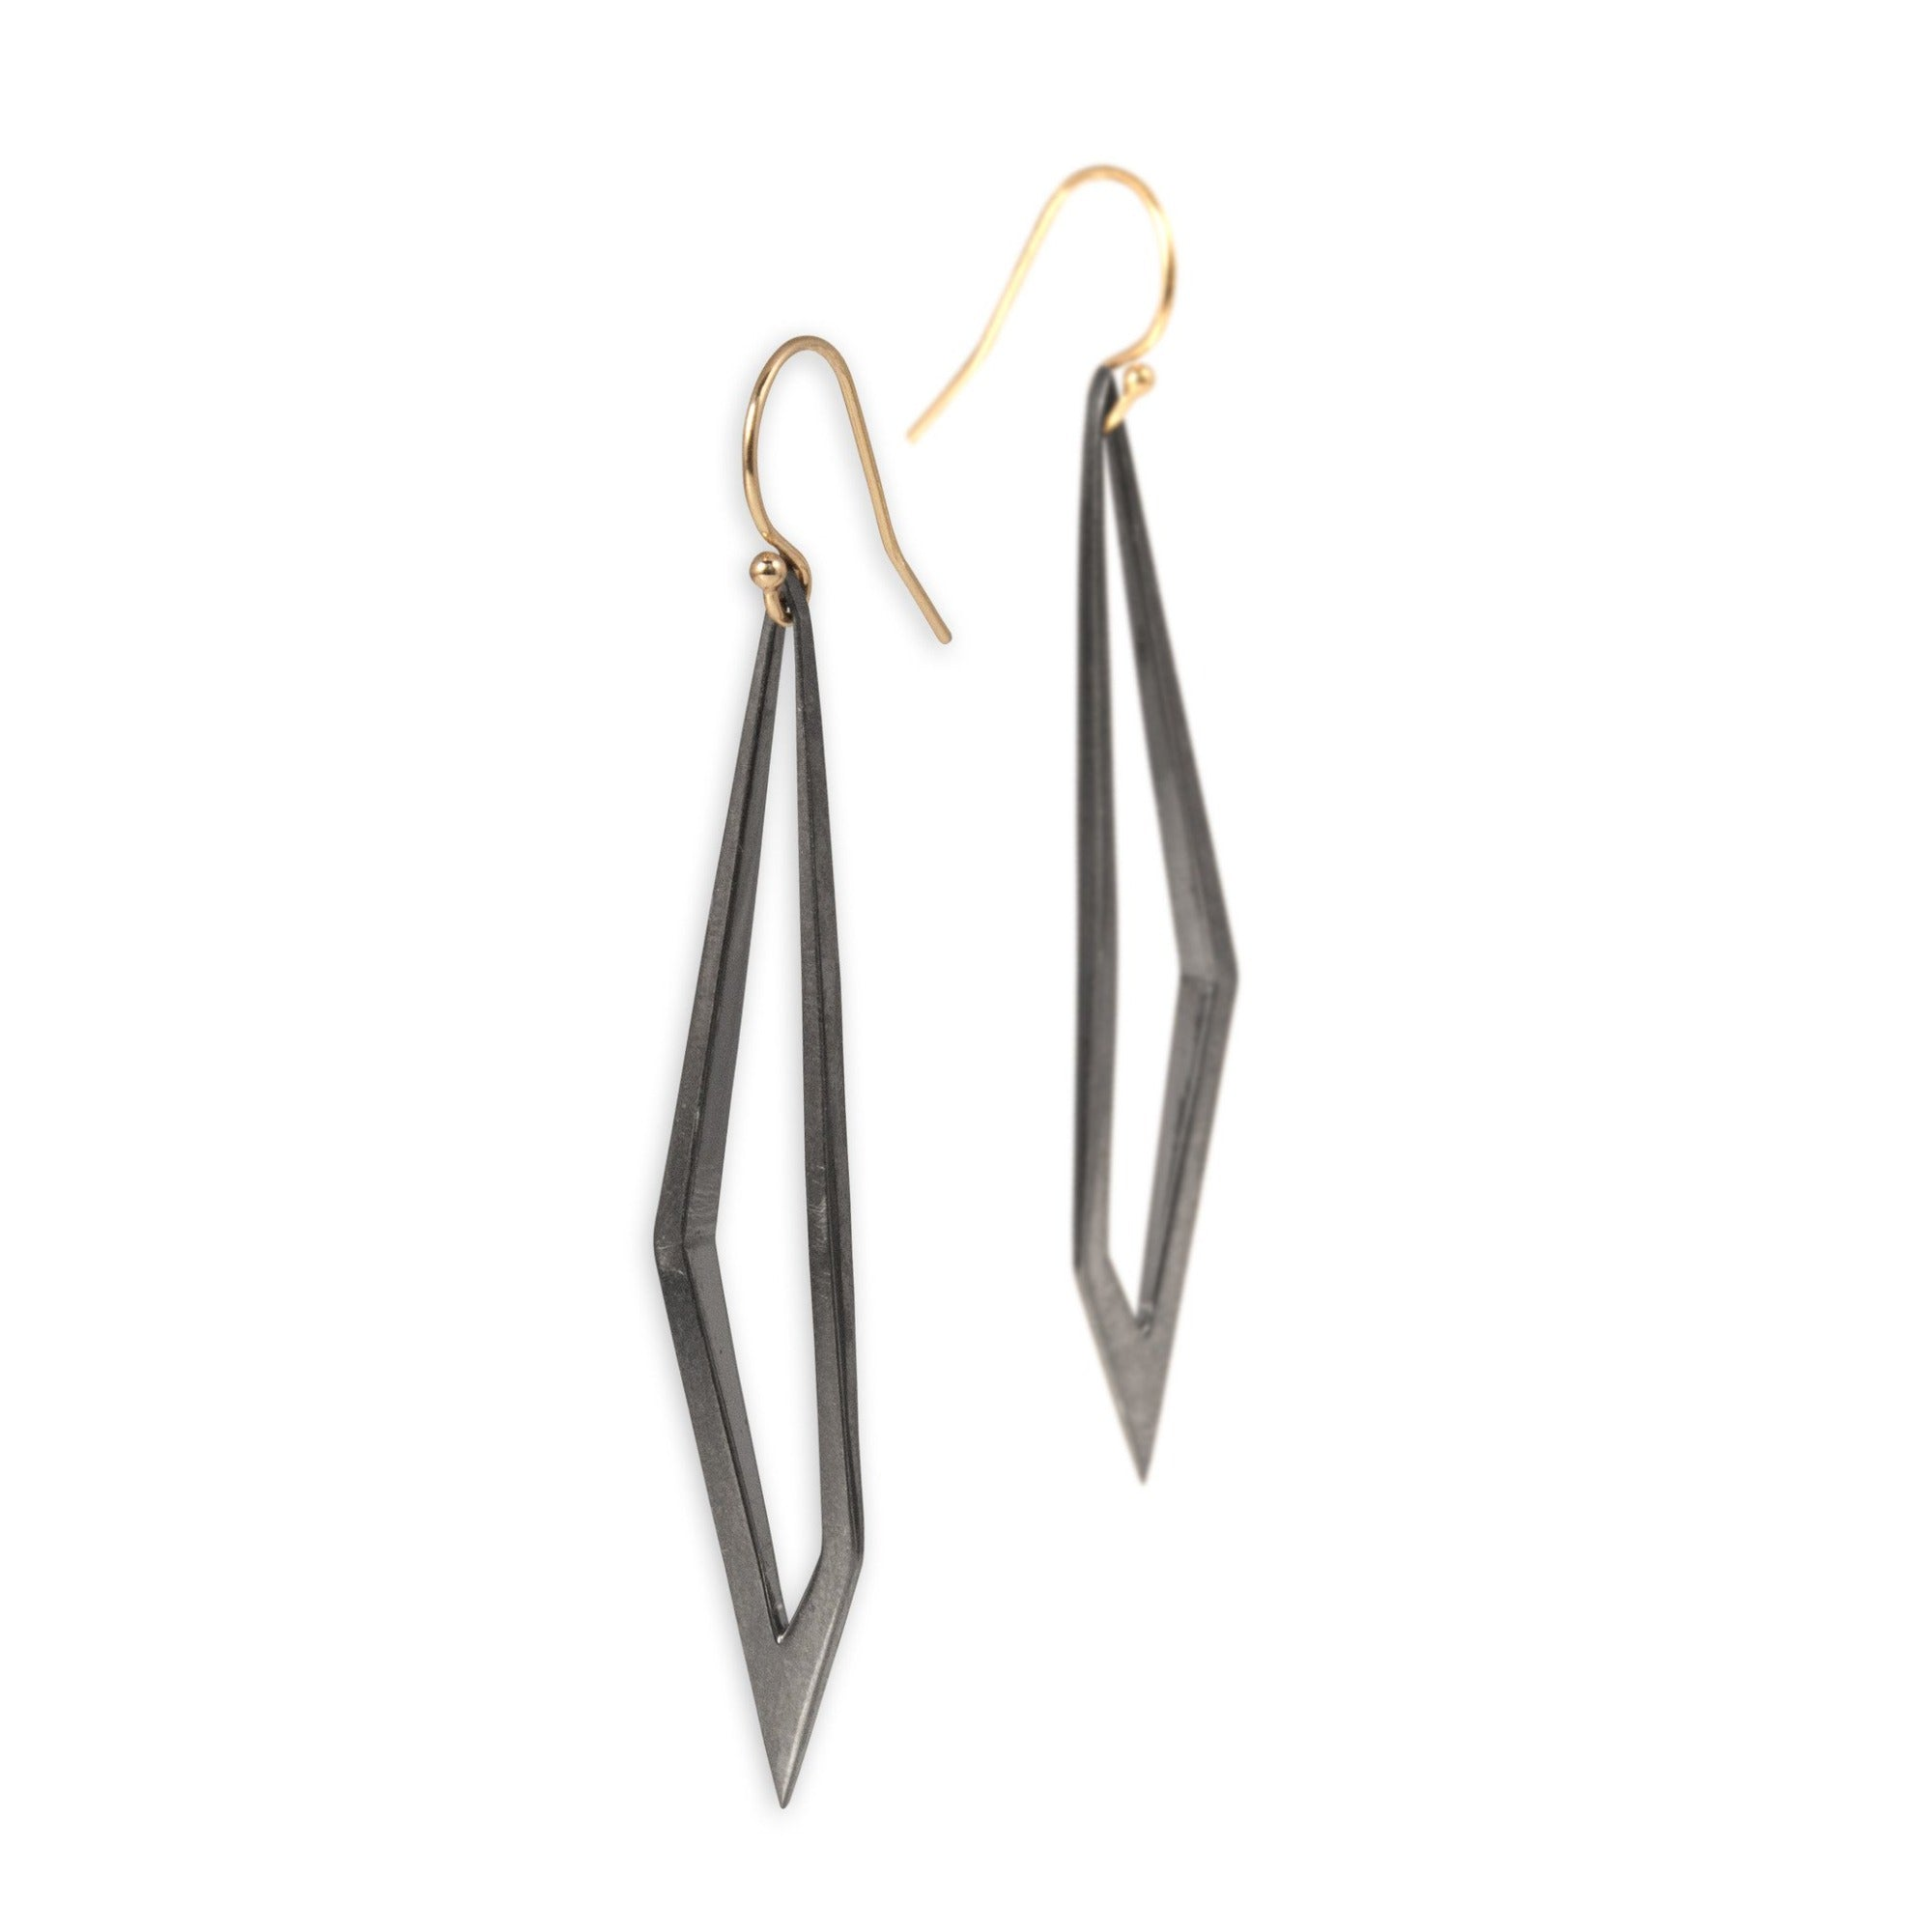 sterling silver plated in black rhodium with 14k gold ear wires hedron dangle earrings